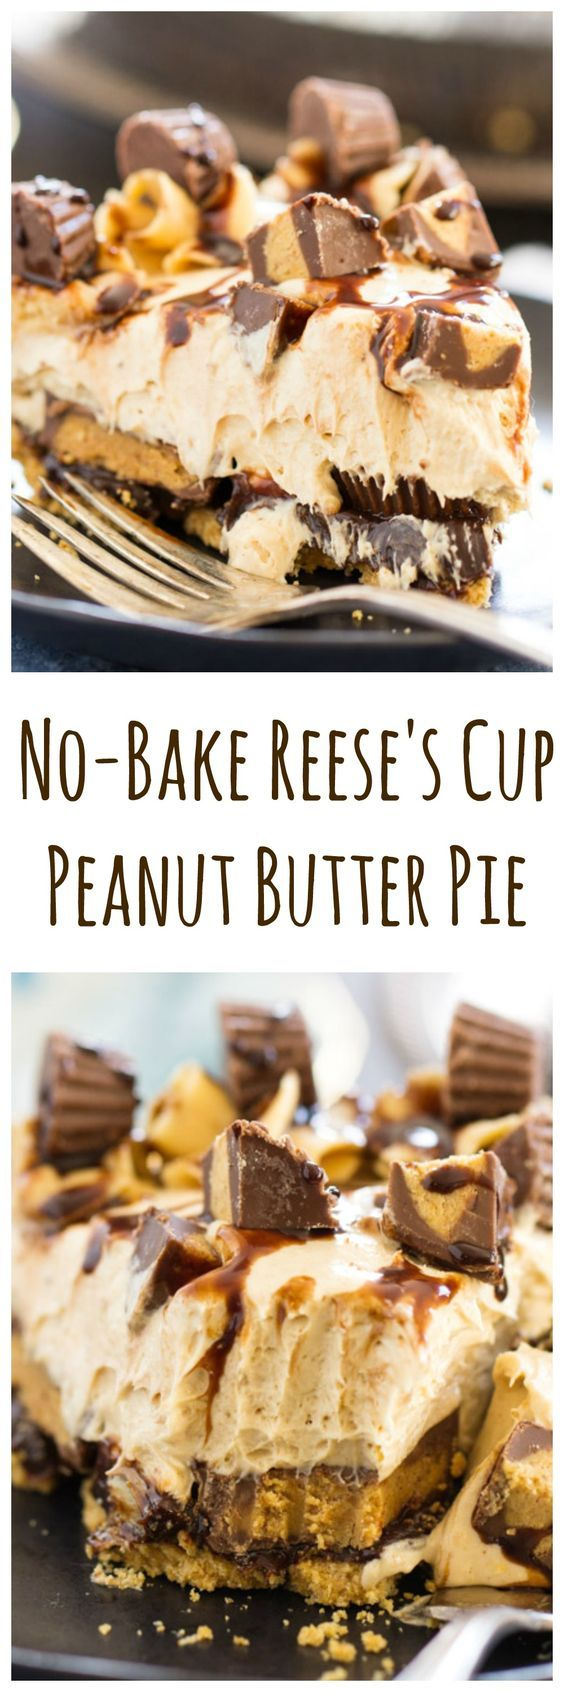 Reese's Cup No Bake Peanut Butter Pie recipe image pin